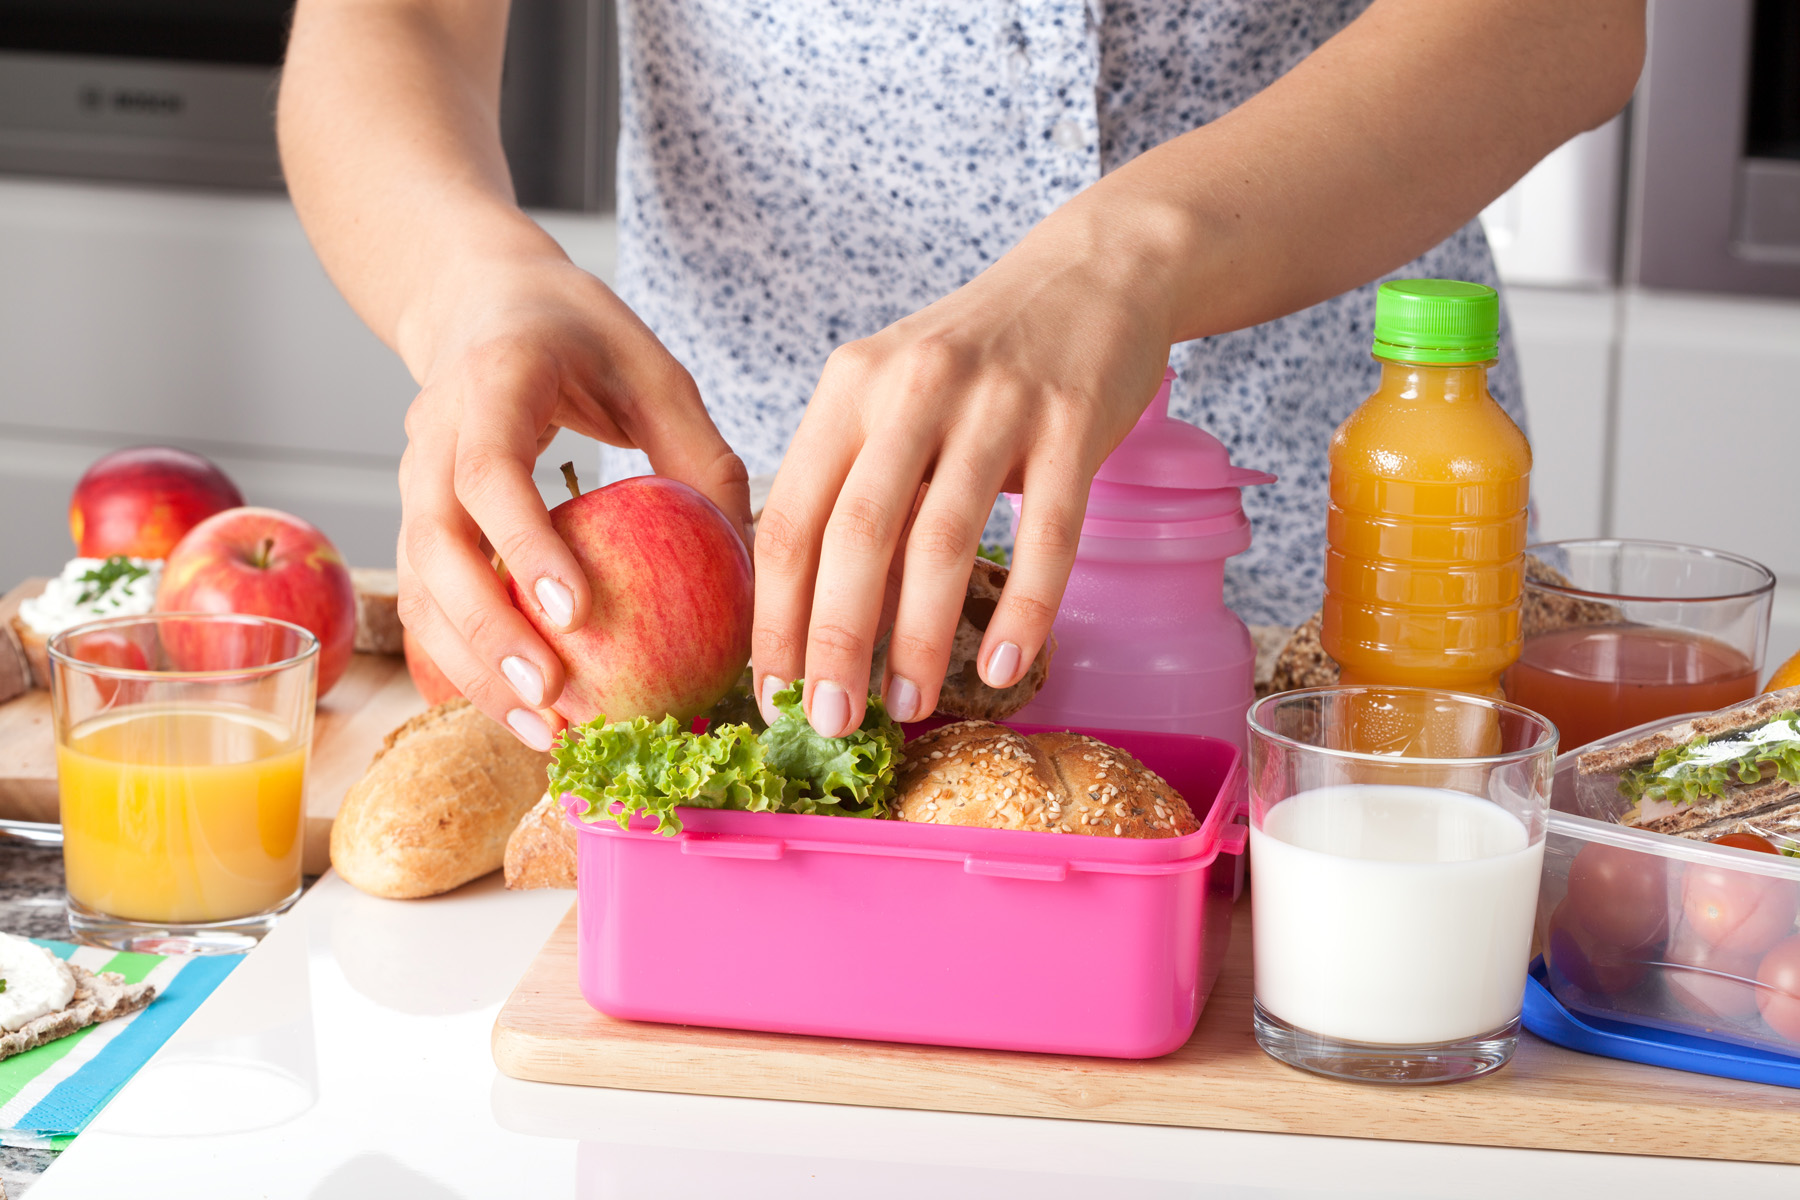 Beef Up the Lunch Box and Create a Meal that Will Satisfy and Nourish |  Meat Poultry Nutrition | meatpoultrynutrition.org